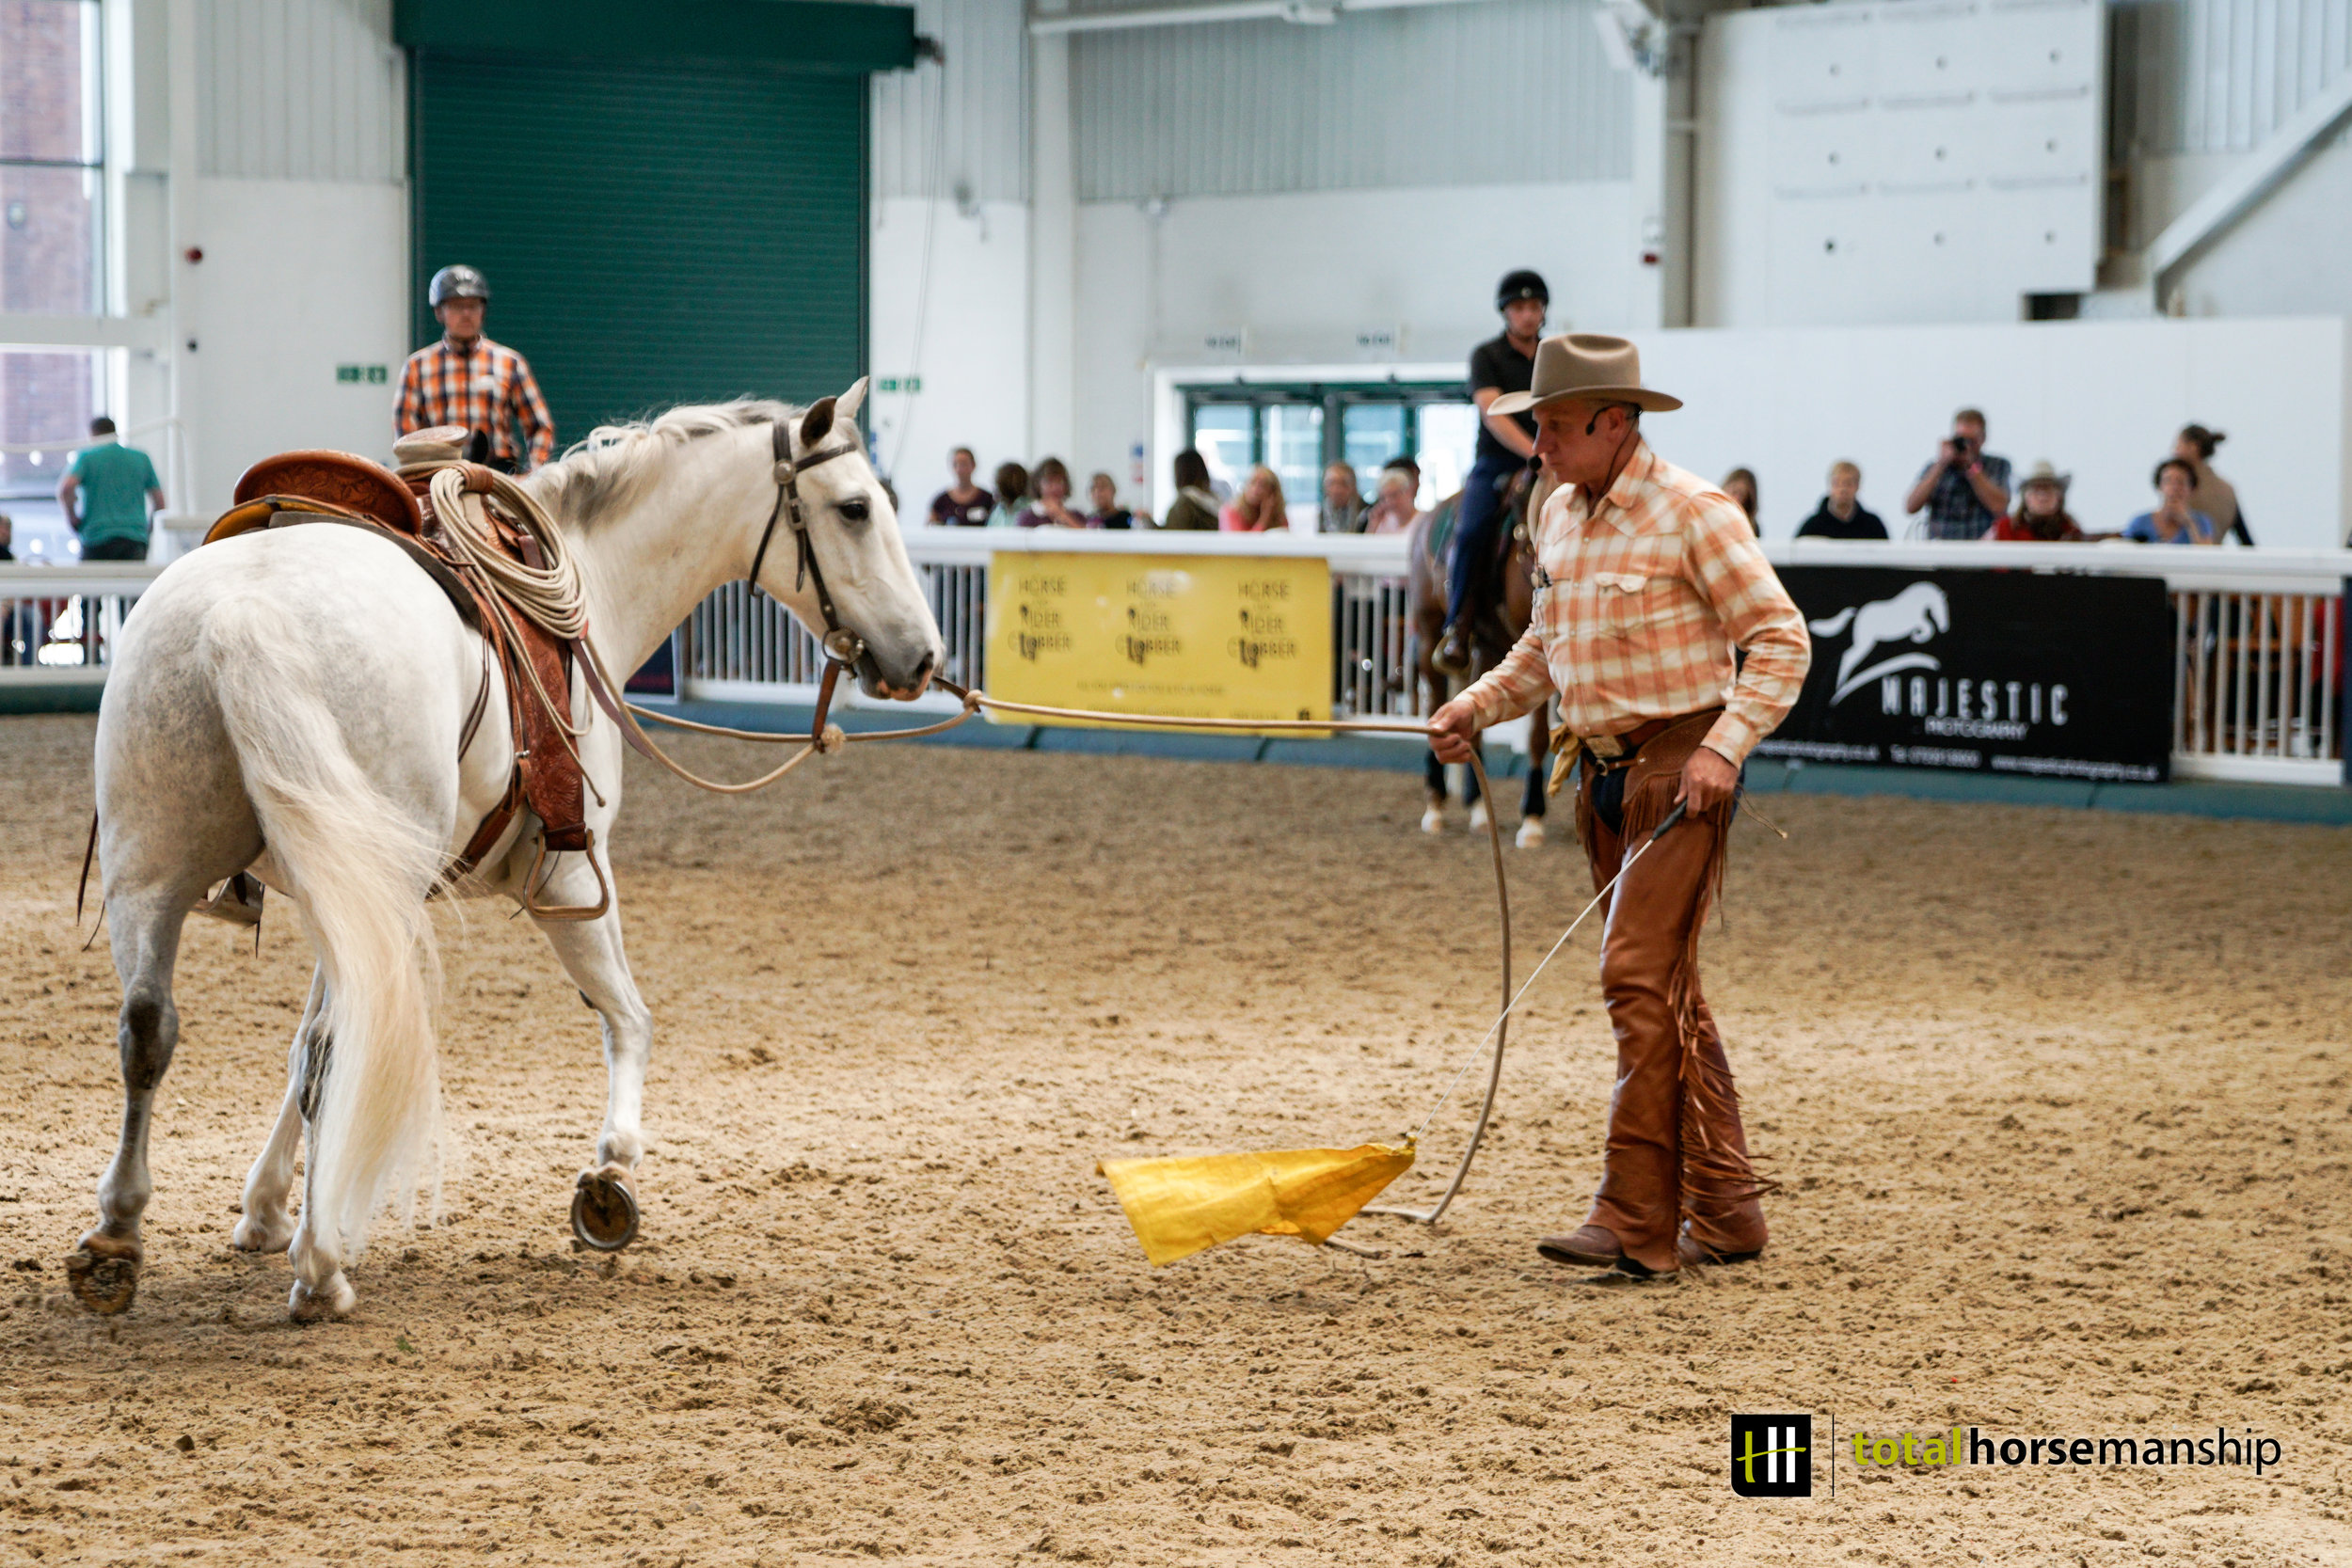 - Buck had two demo horses this year, Spider (a 17hh bay ISH gelding) for the morning class and Archie (a 15.2hh grey Welsh x Irish gelding) for the afternoon class. Both horses were unseen by Buck before the clinic and their progression over the three days was incredible to watch.